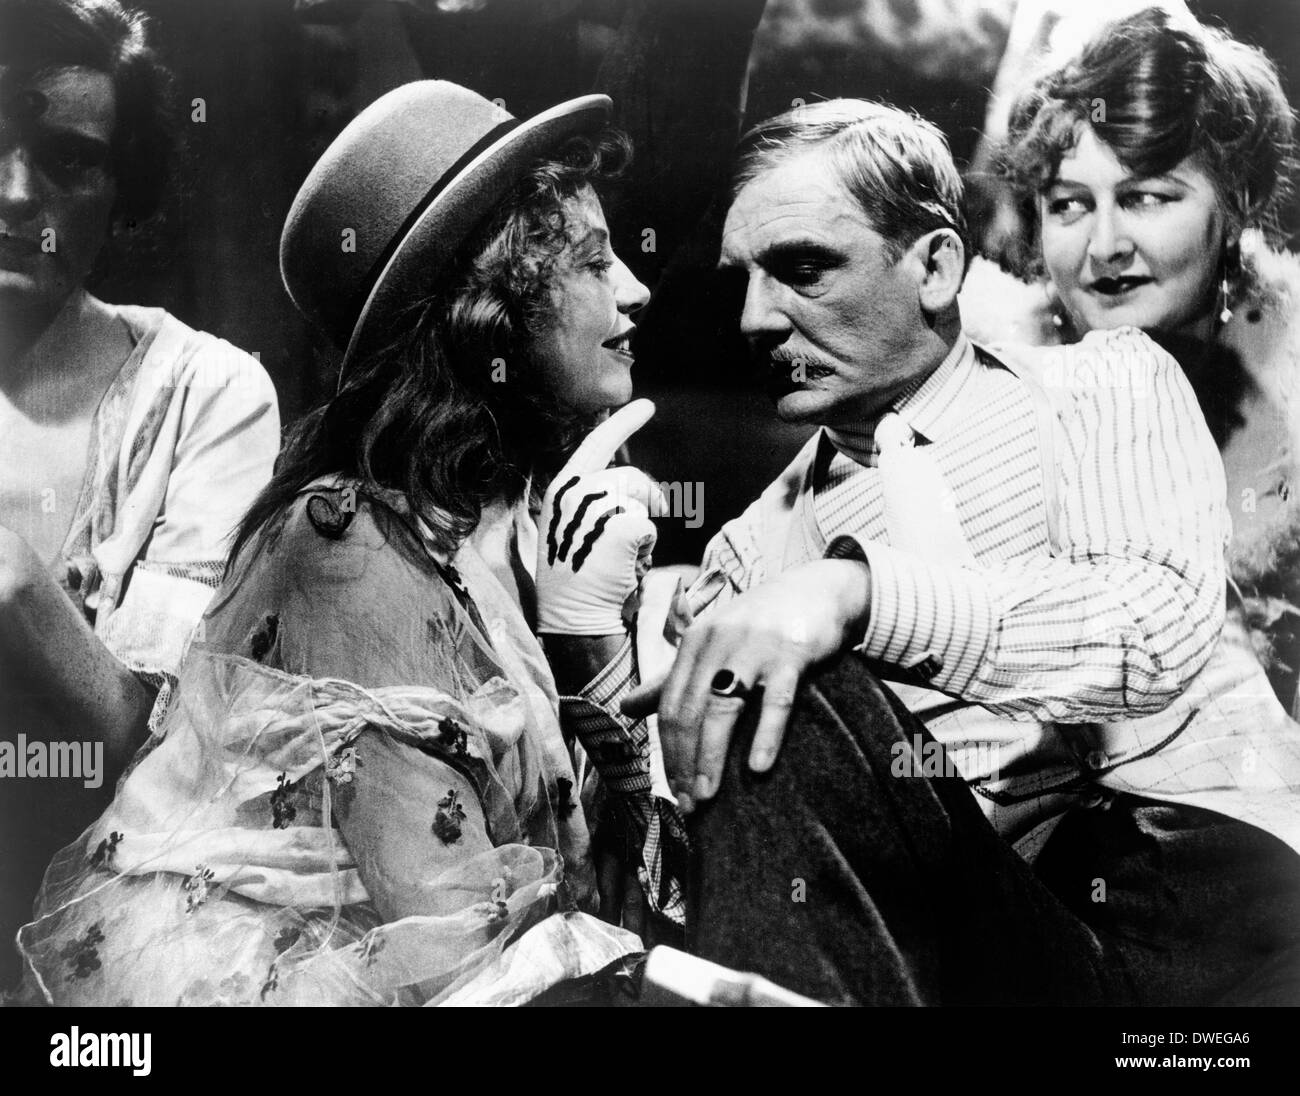 Carola Neher, Rudolf Forster and Valeska Gert, on-set of the Film, 'The Threepenny Opera' Directed by  G. W. Pabst, 1931 - Stock Image